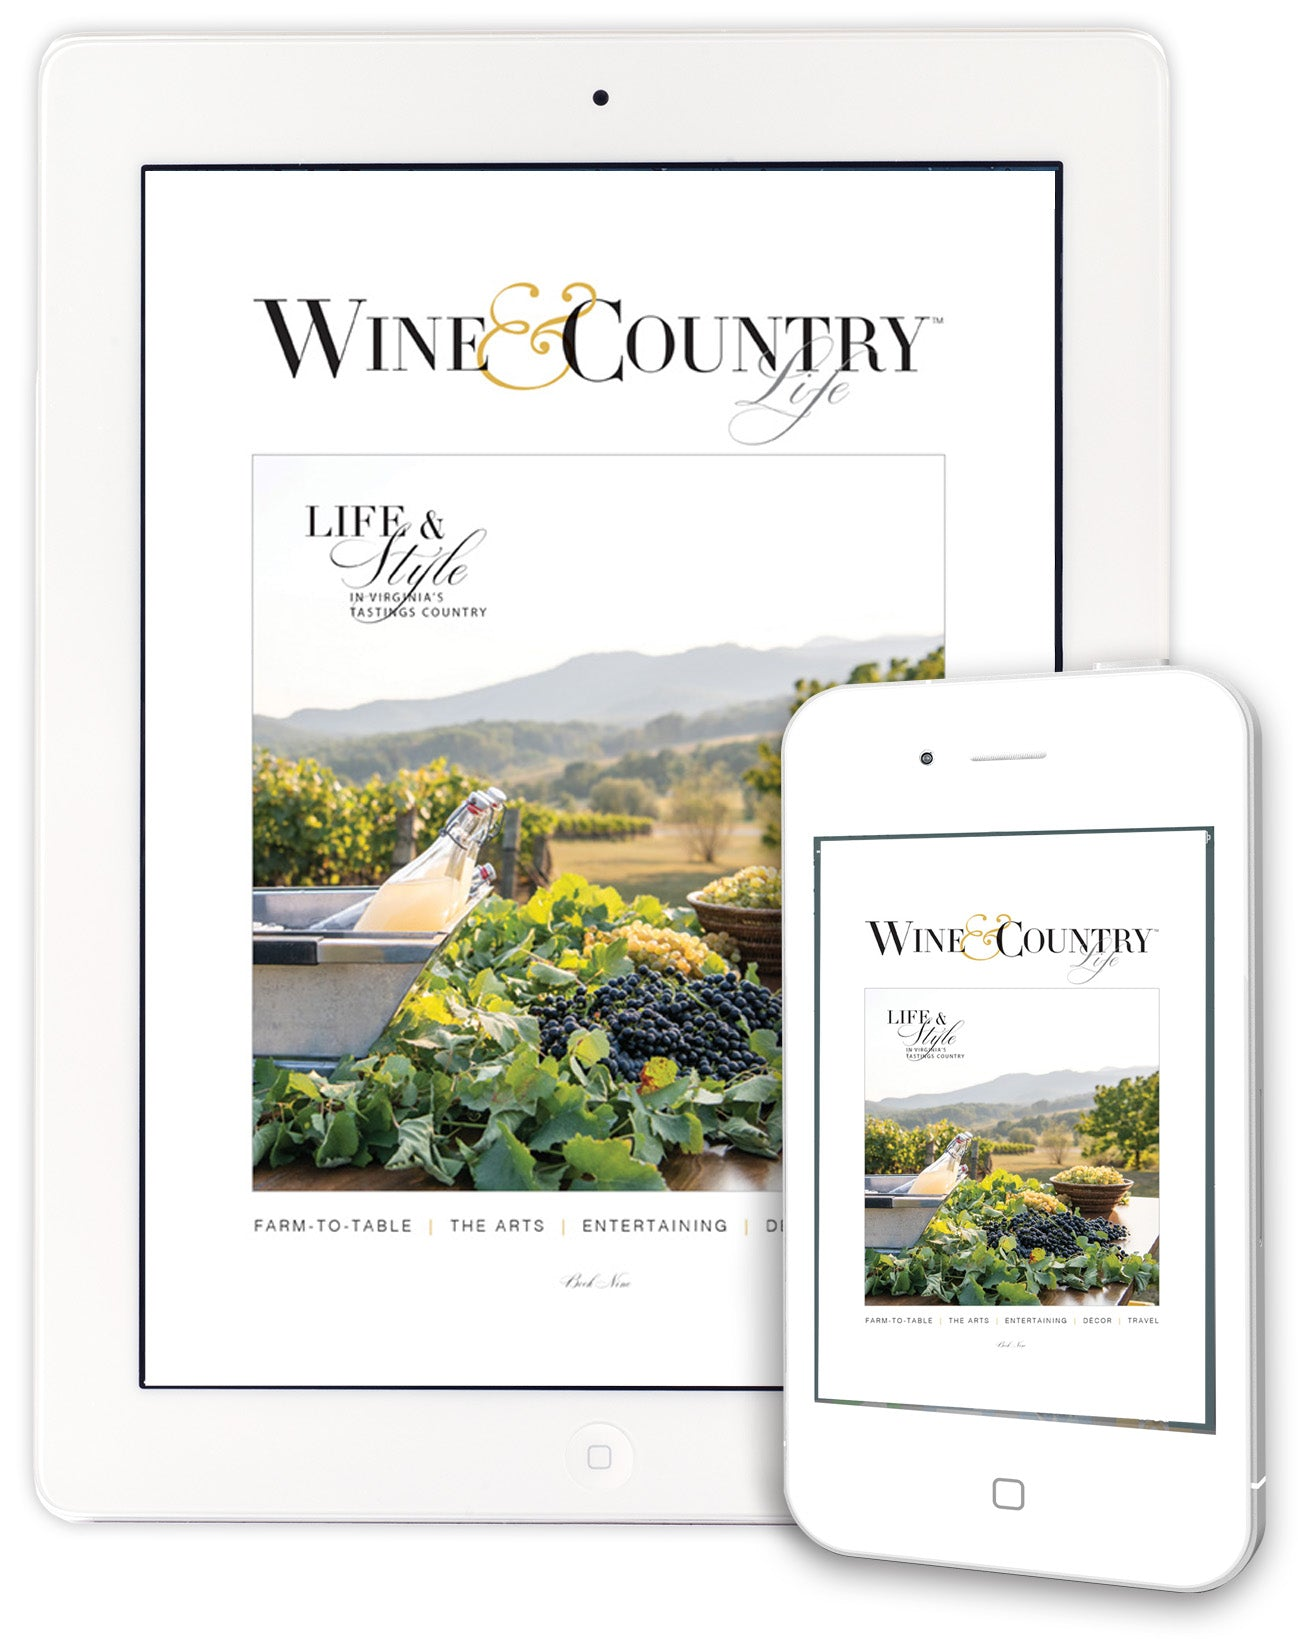 W&C Life Book 9 - Fall 2019 DIGITAL - SINGLE ISSUE